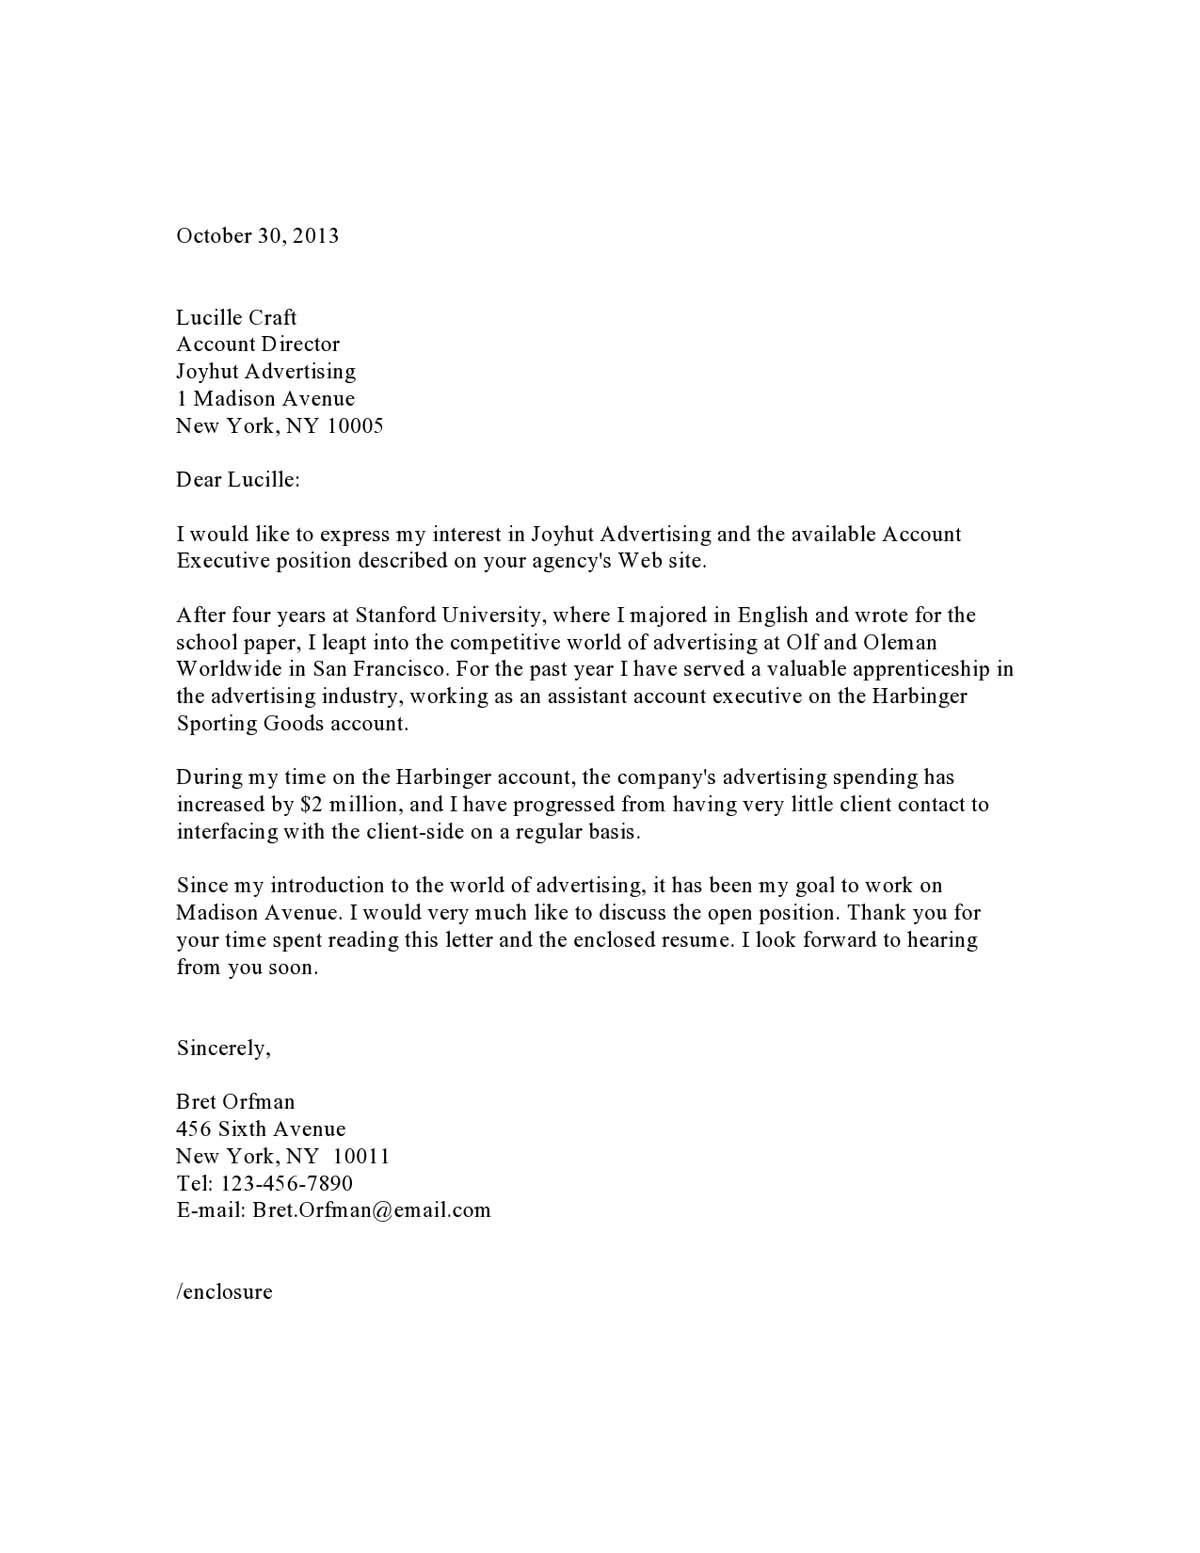 email resume and cover letter etiquette